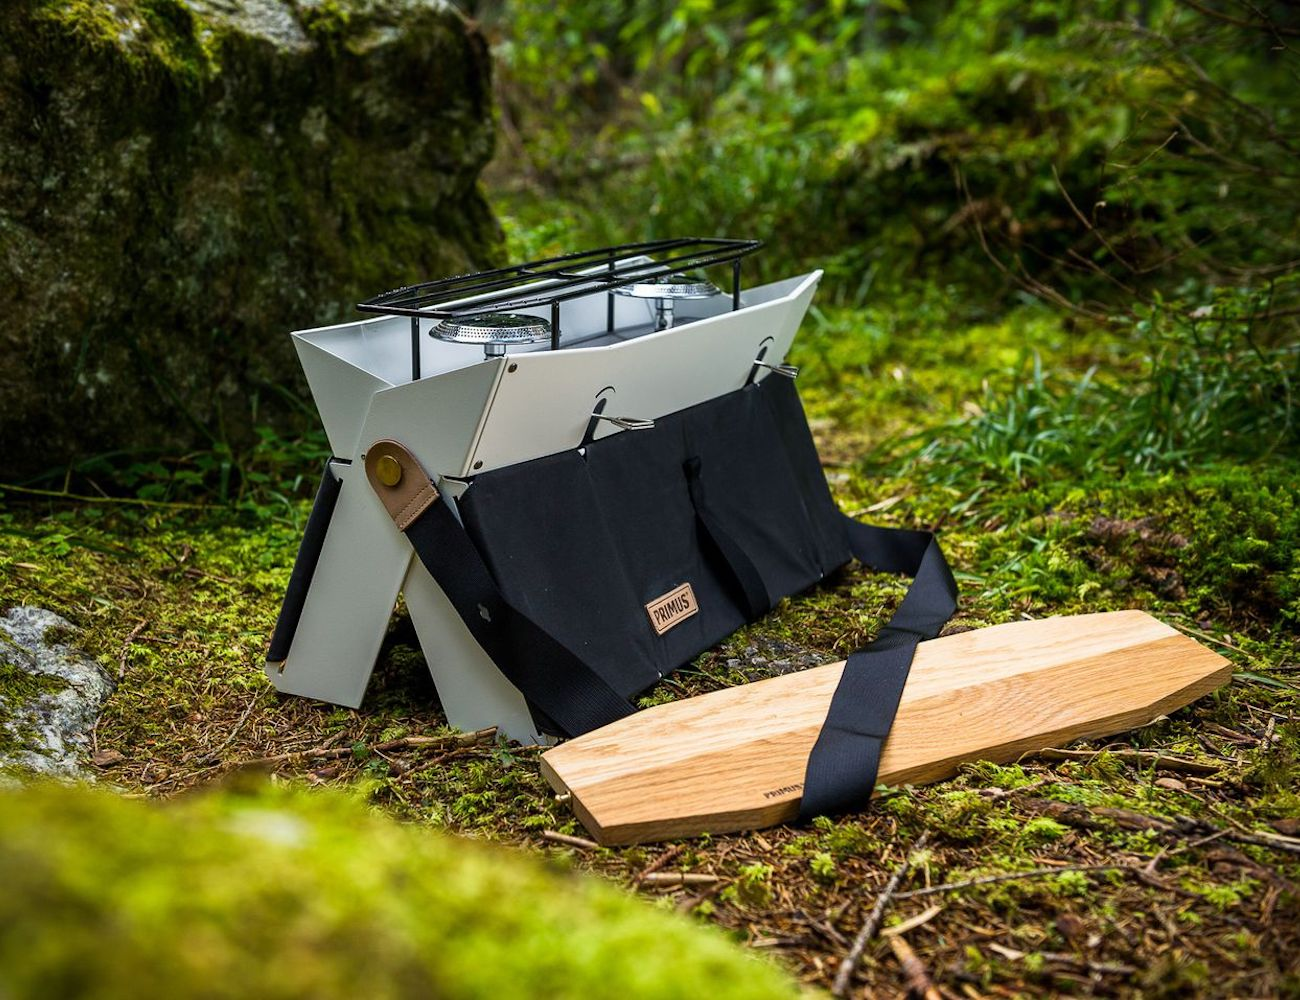 Primus Onja Collapsible Camping Stove